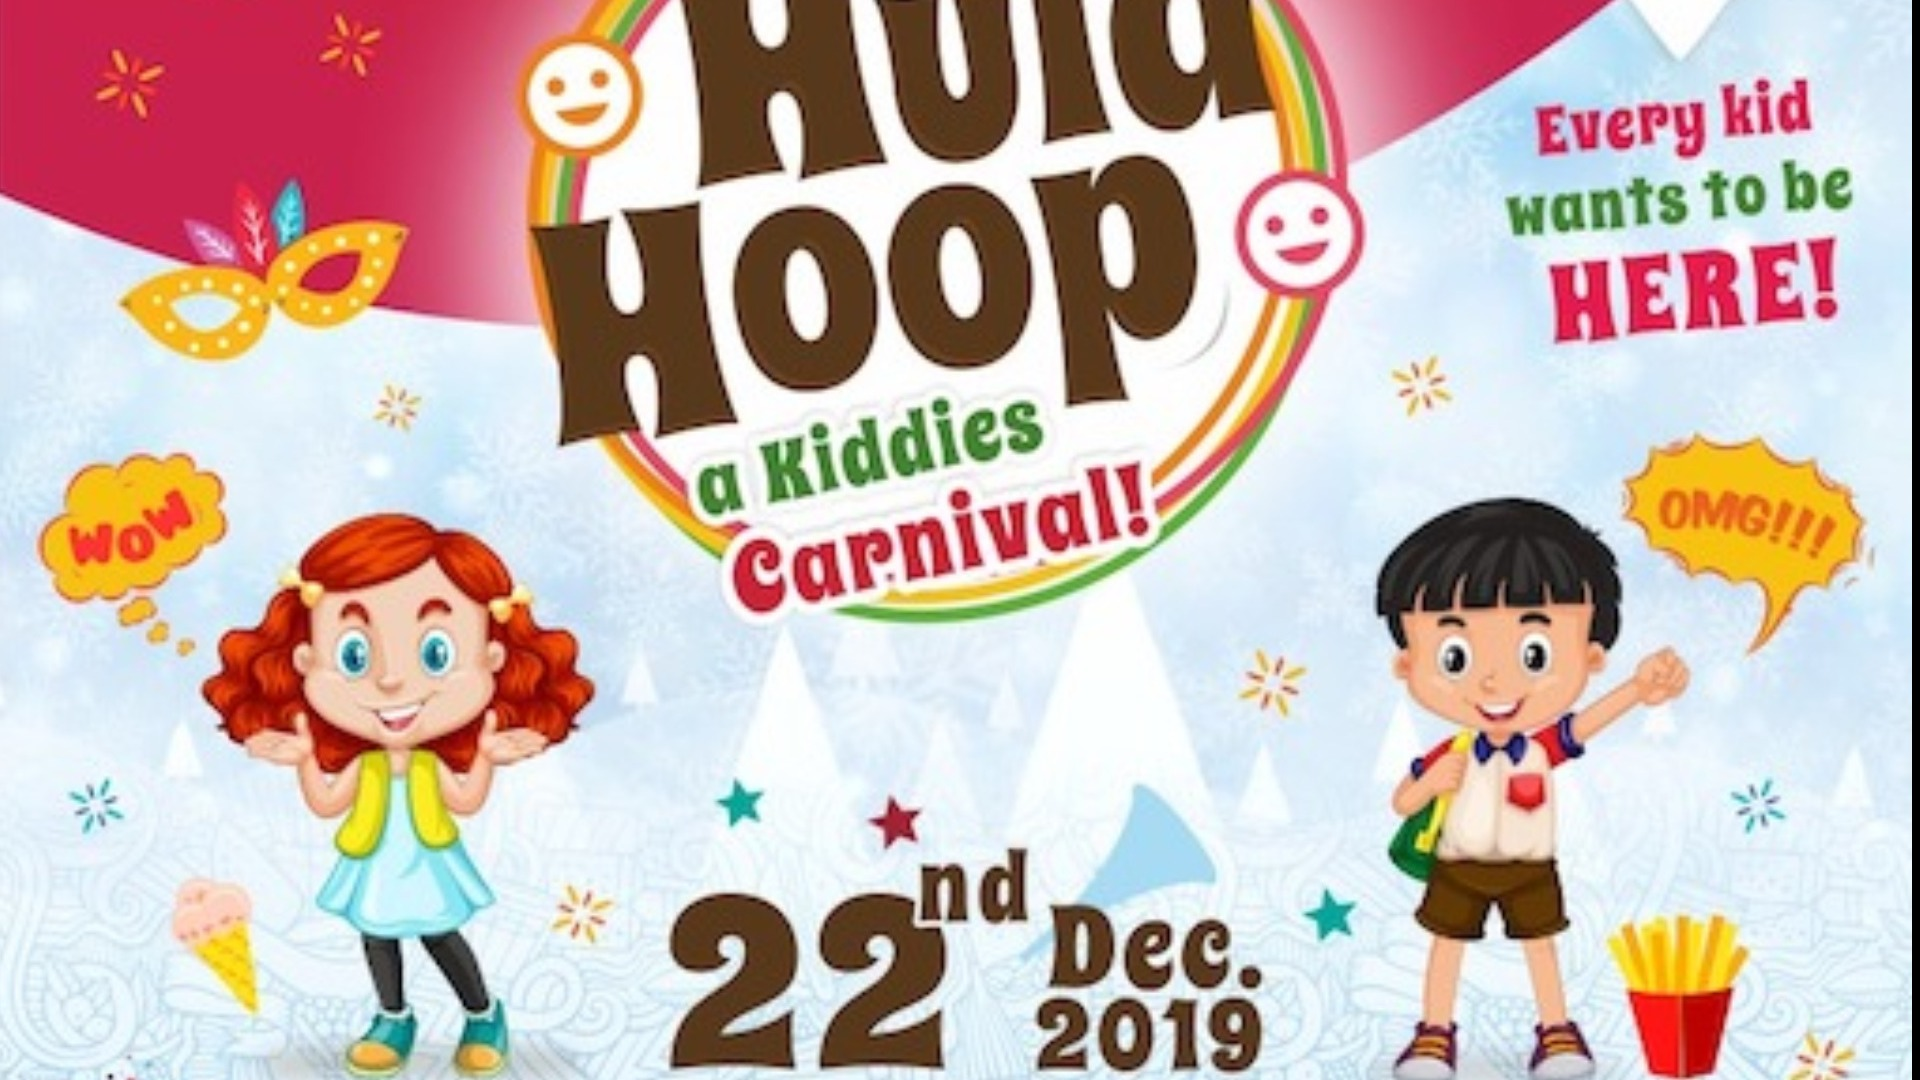 Hula Hoop Kids Carnival Tickets by hulahoop kids, Sat Dec 21.